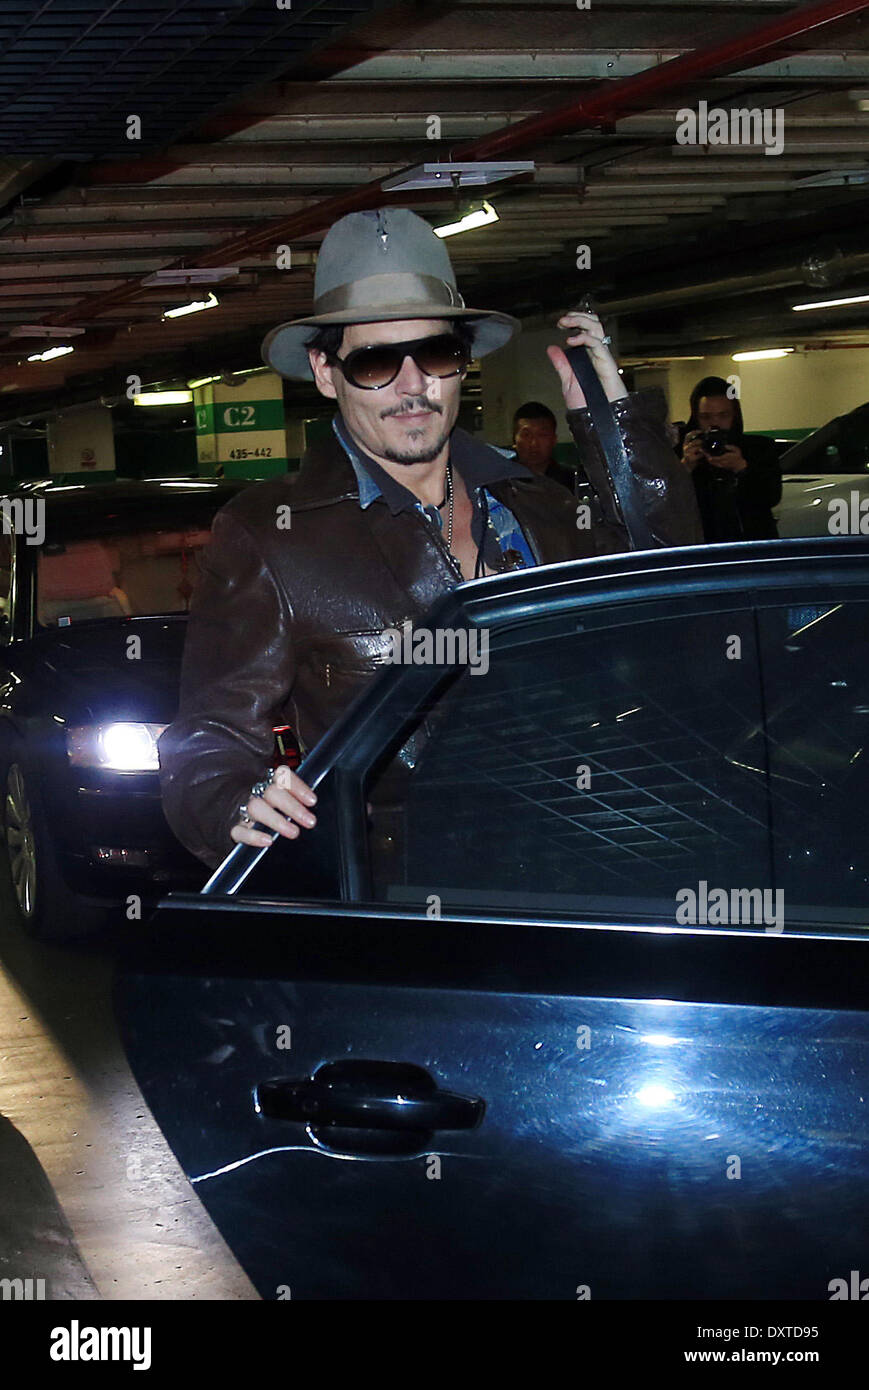 Beijing, China. 31st Mar, 2014. Johnny Depp arrives at a hotel in China's Beijing for the promotion of upcoming film 'Transcendence,' March 30, 2014. Credit:  Xinhua/Alamy Live News - Stock Image